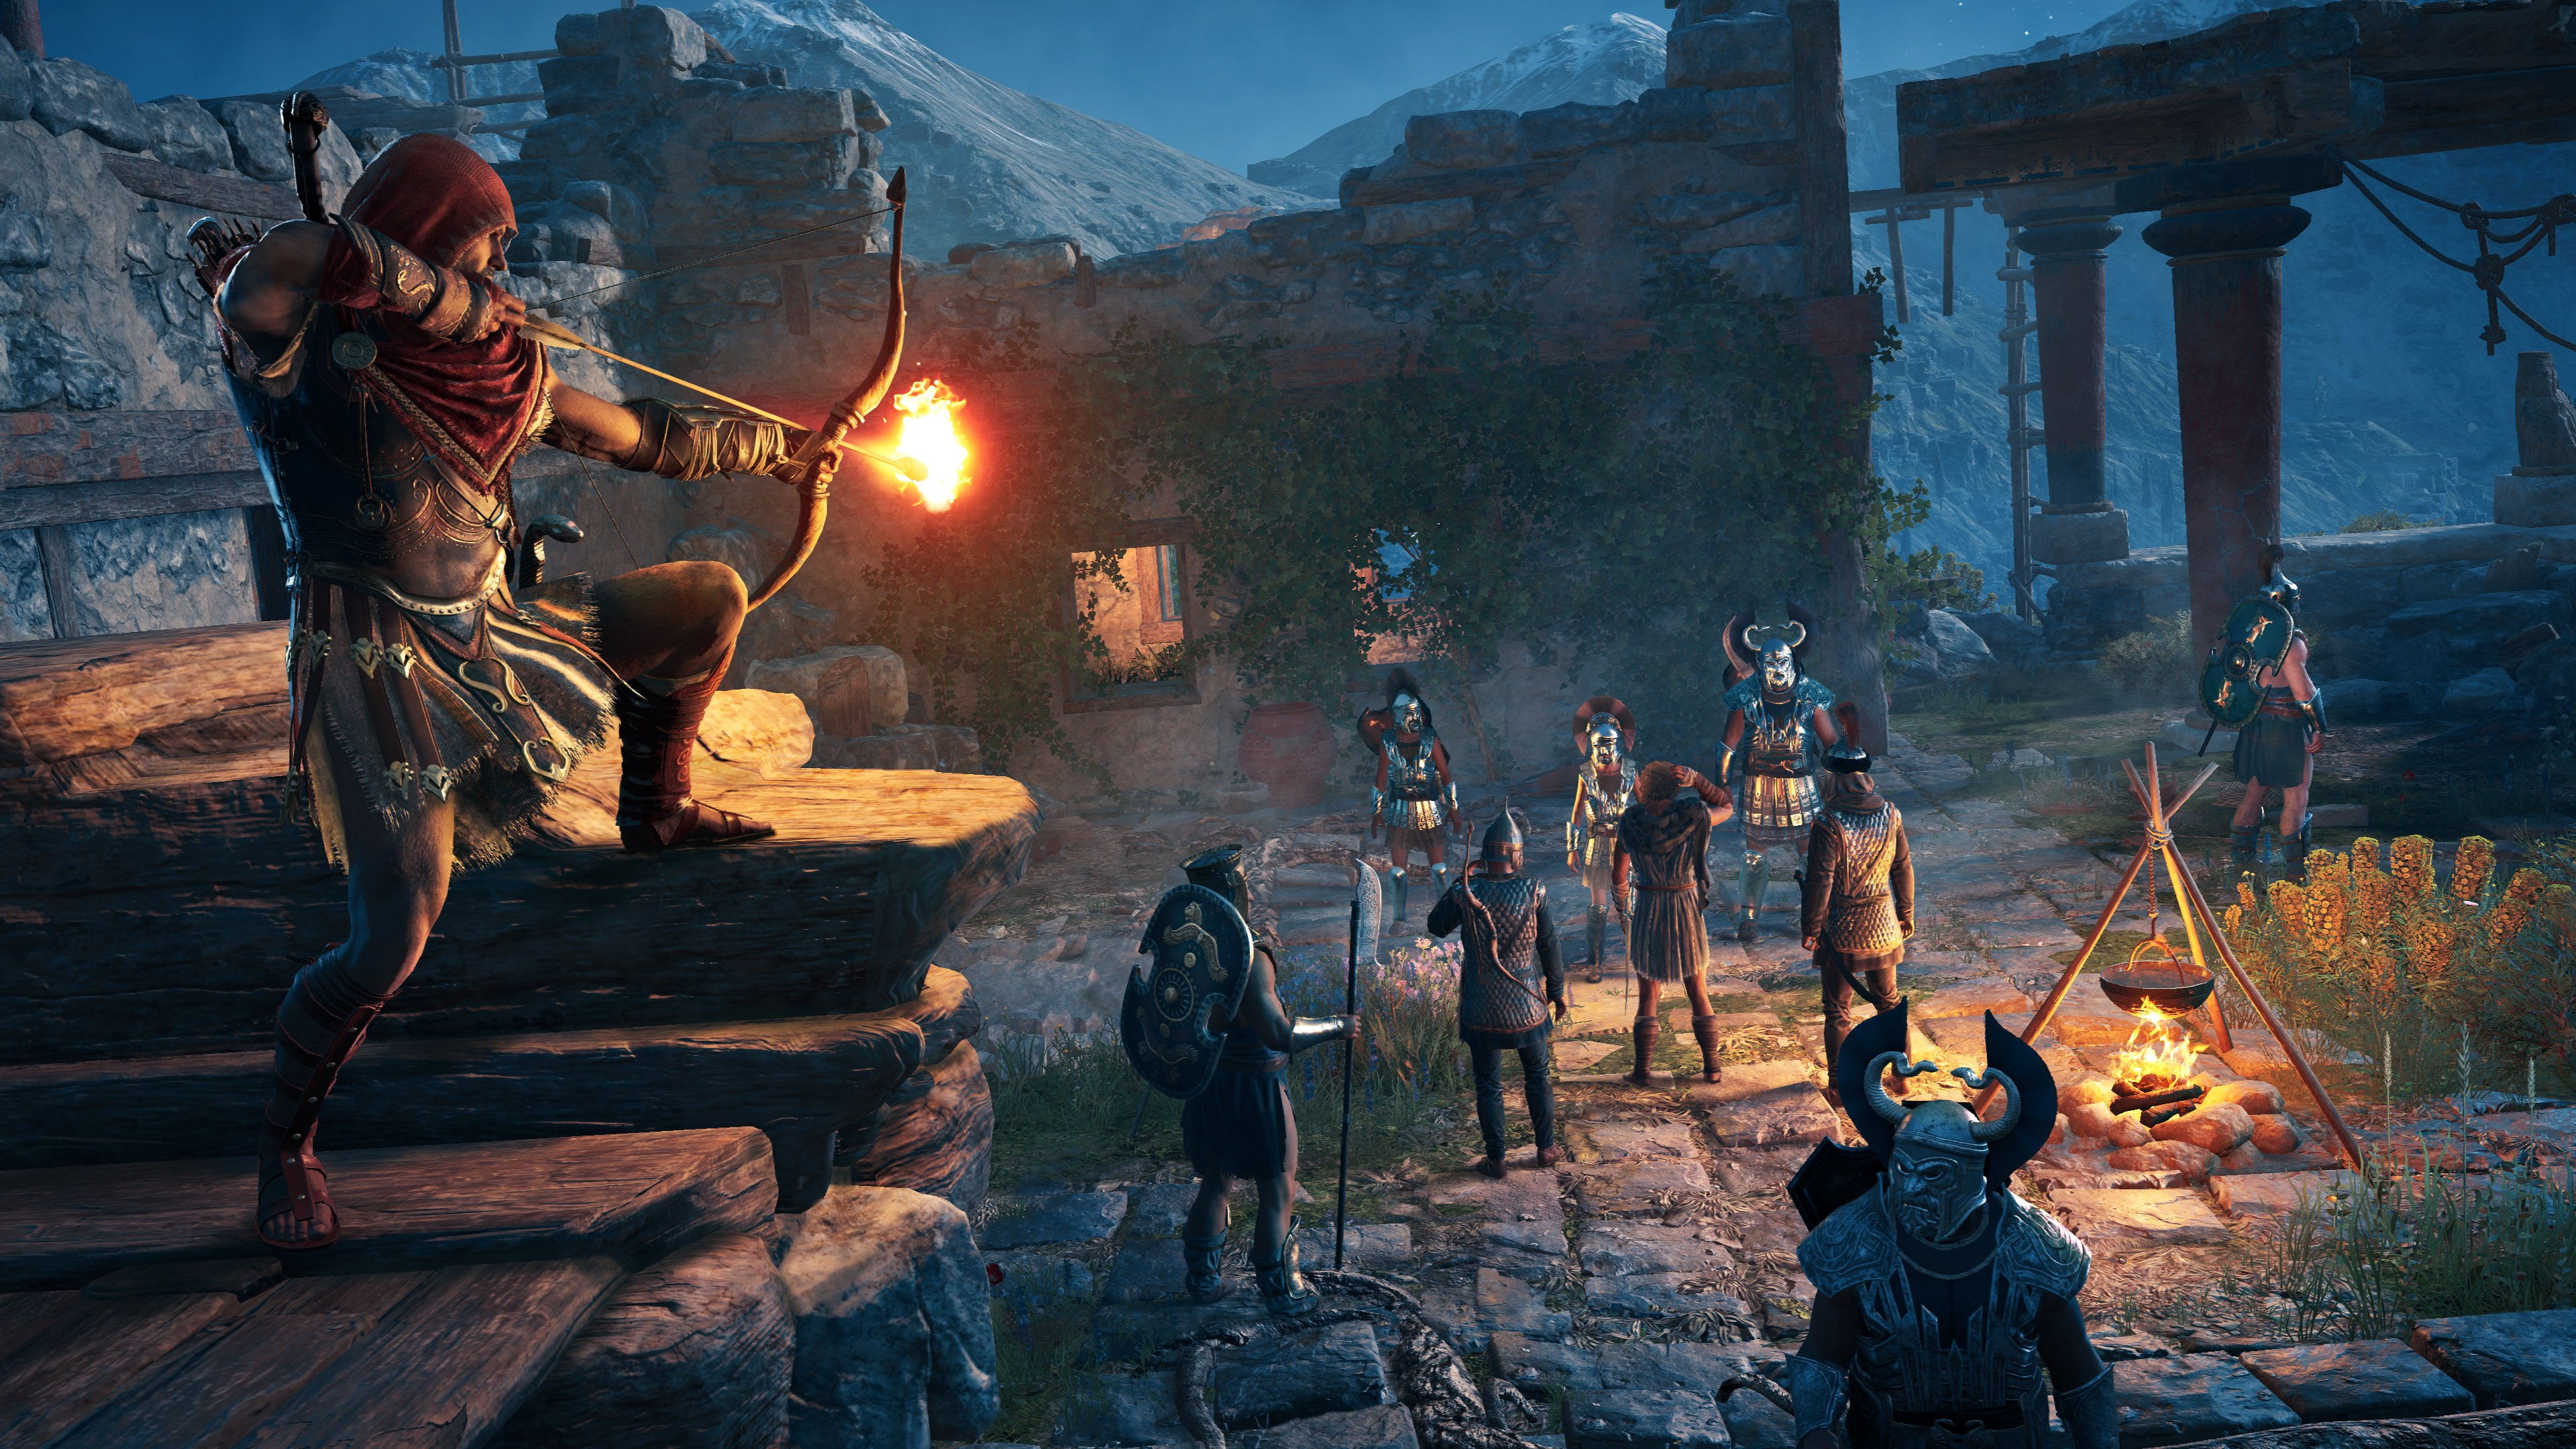 Assassin's Creed Odyssey wraps up its first DLC today screenshot